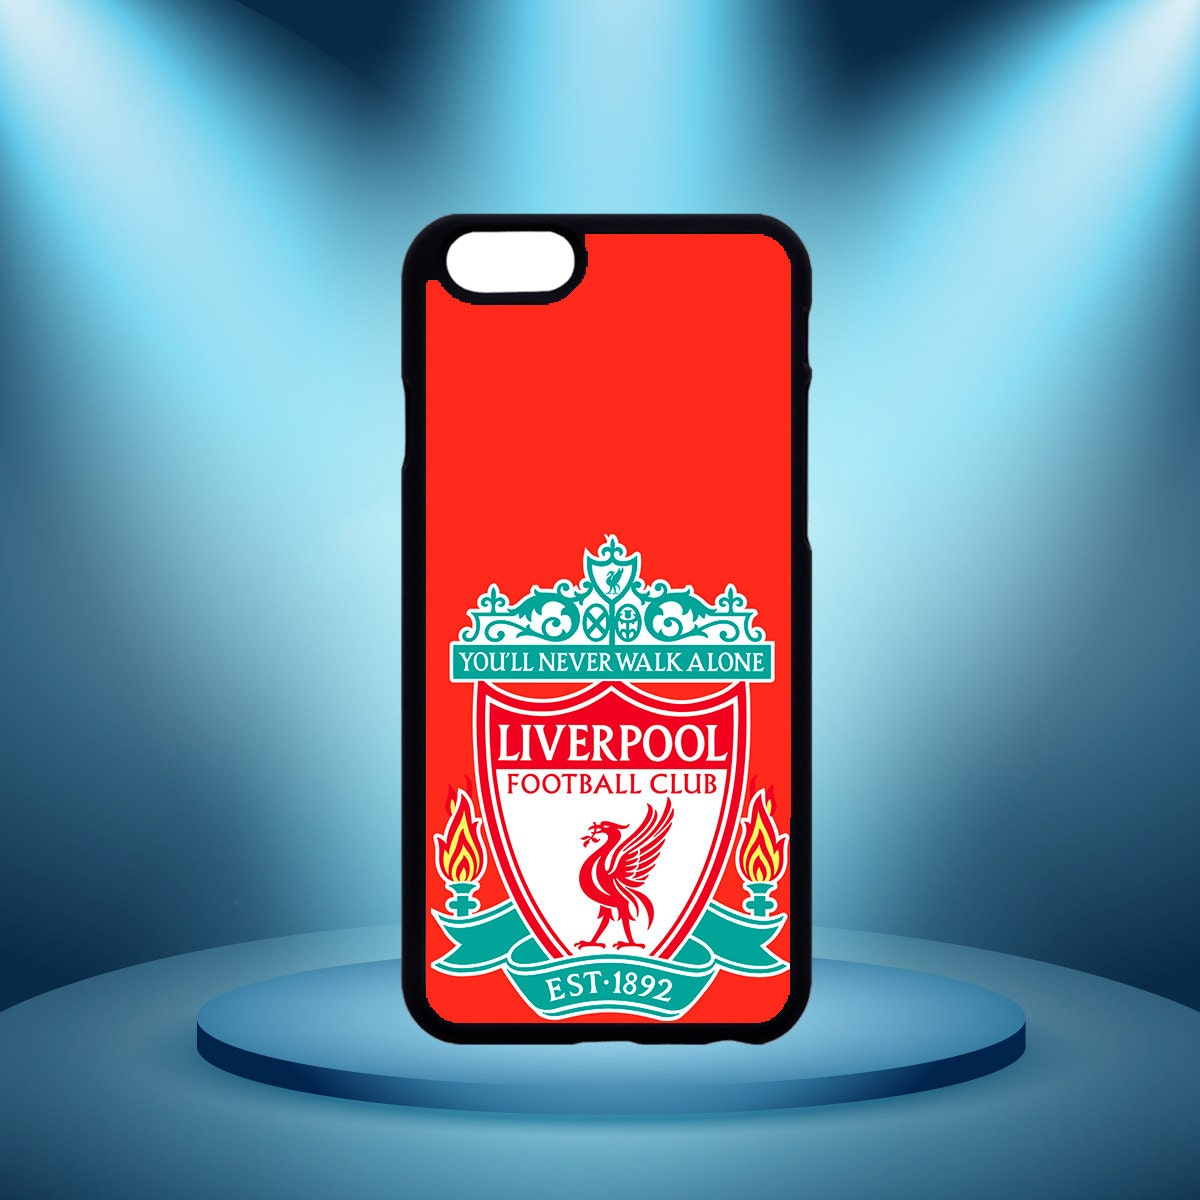 Liverpool FC iPhone 6/6s Case by MidnightPrintsUK on Etsy